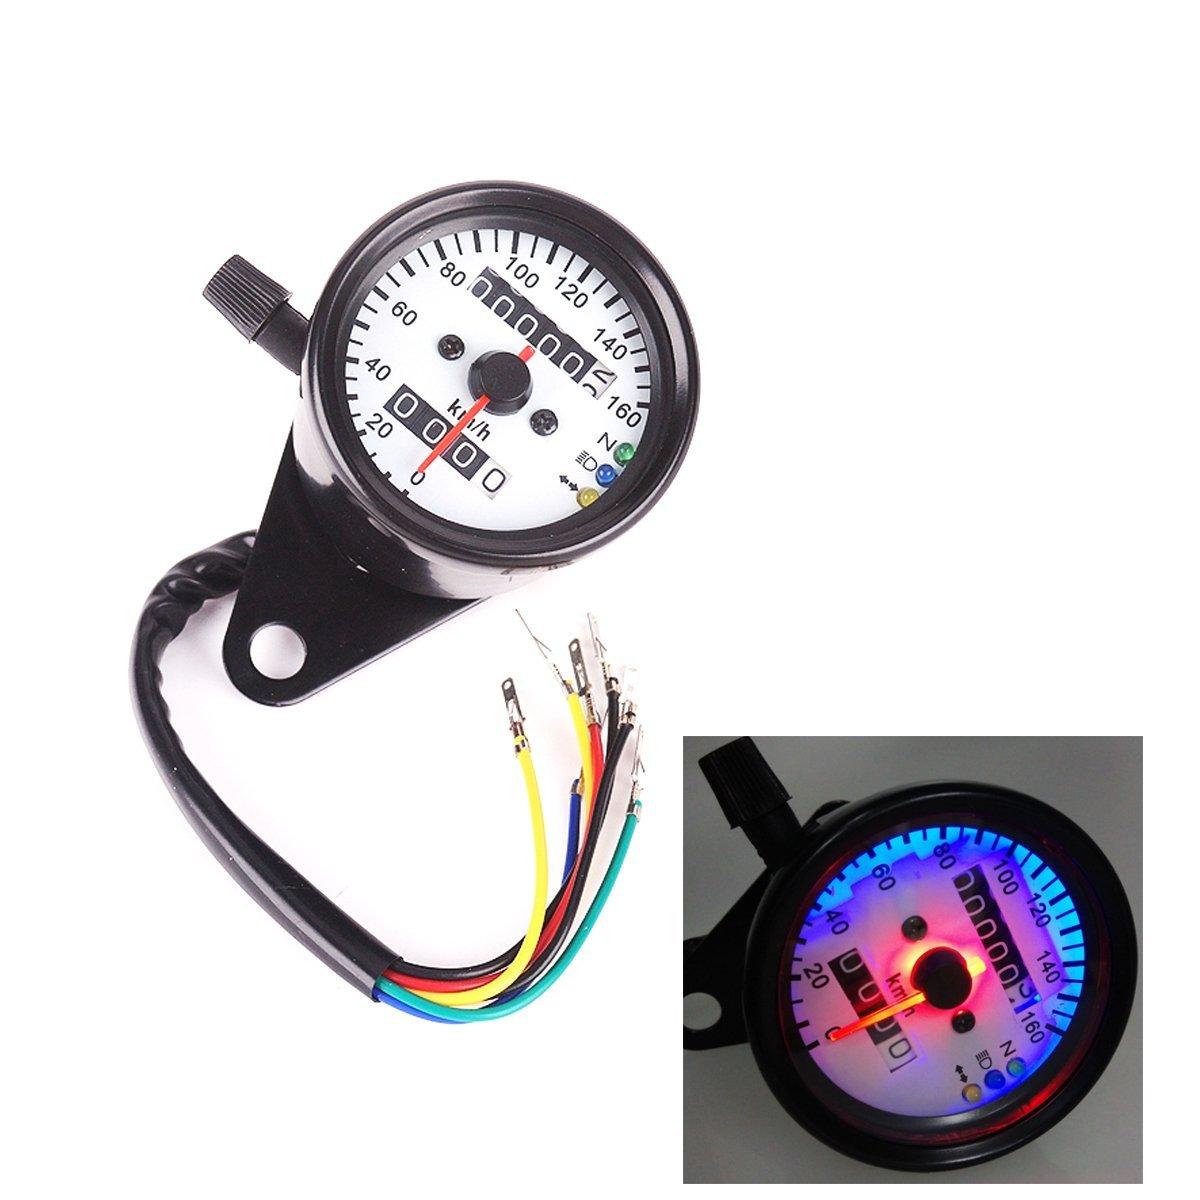 Iztor Universal Motorcycle Dual Odometer Speedometer Gauge 0-160km/h LED Backlight Signal Light Neutral Headlight Indicator white display